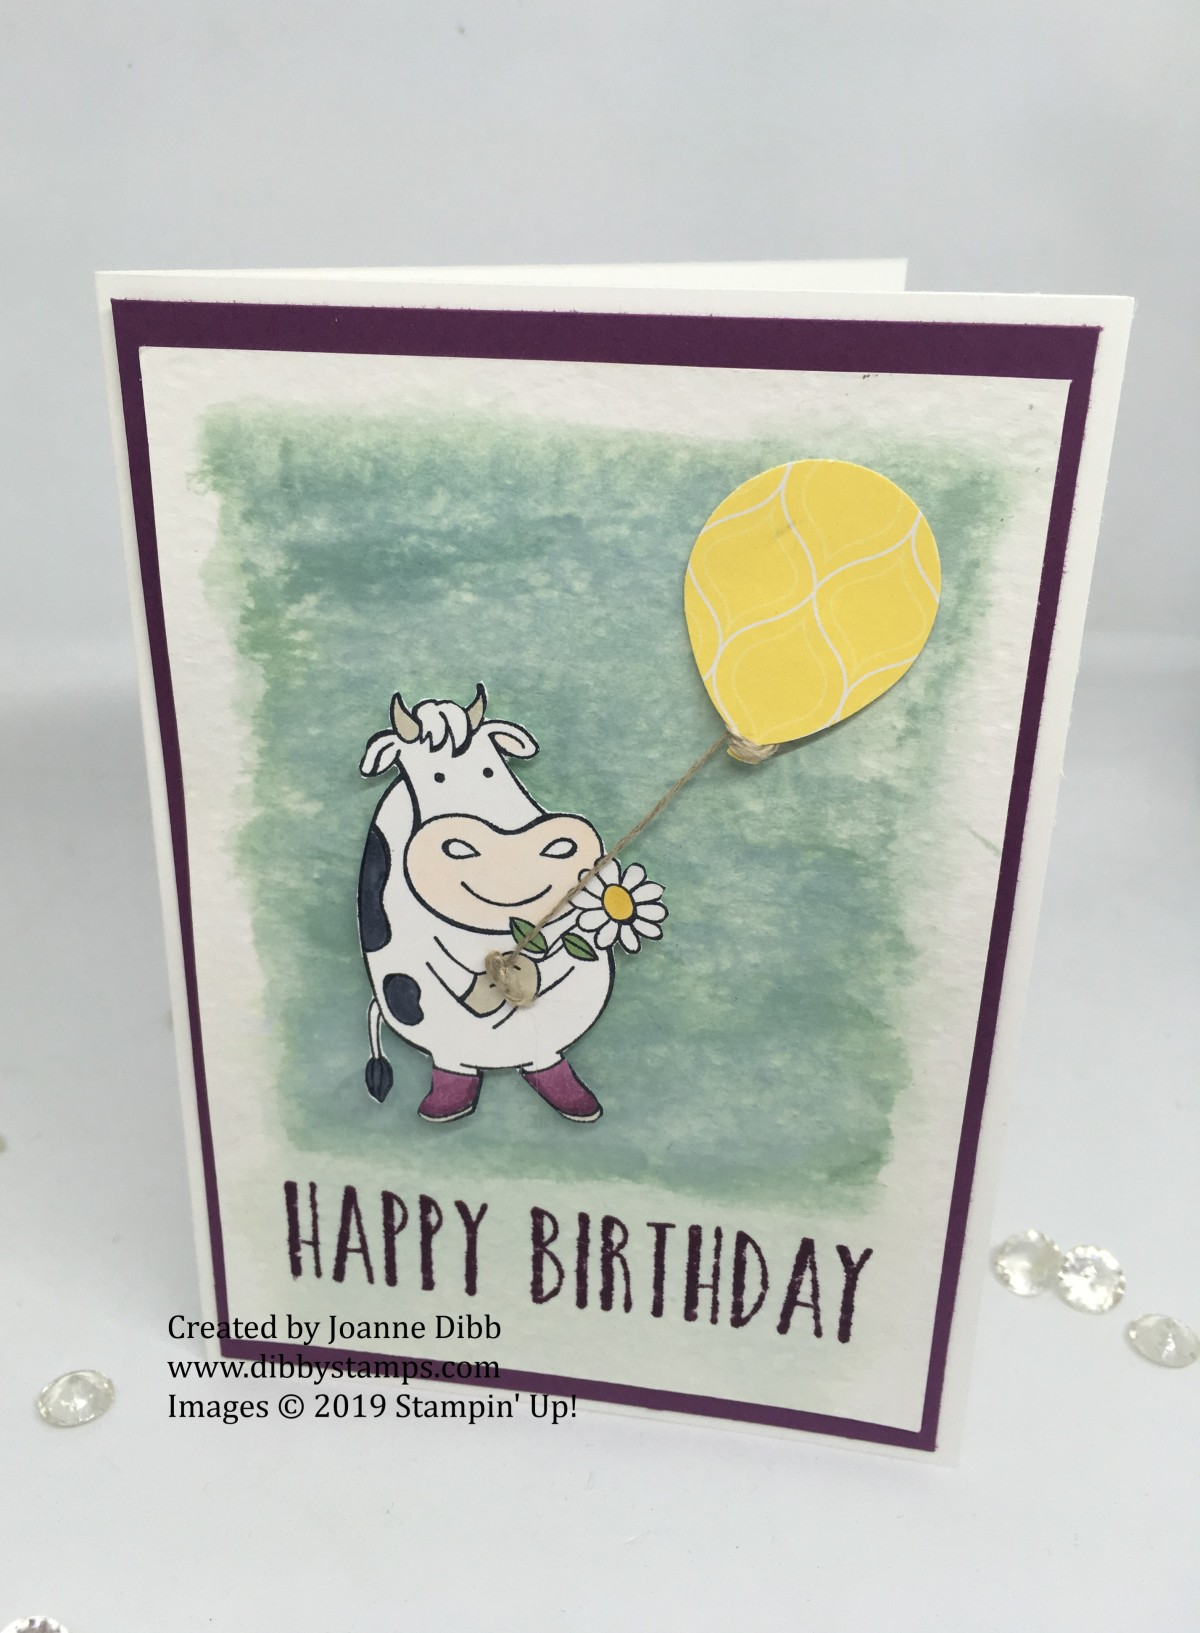 Over the Moon Birthday Card